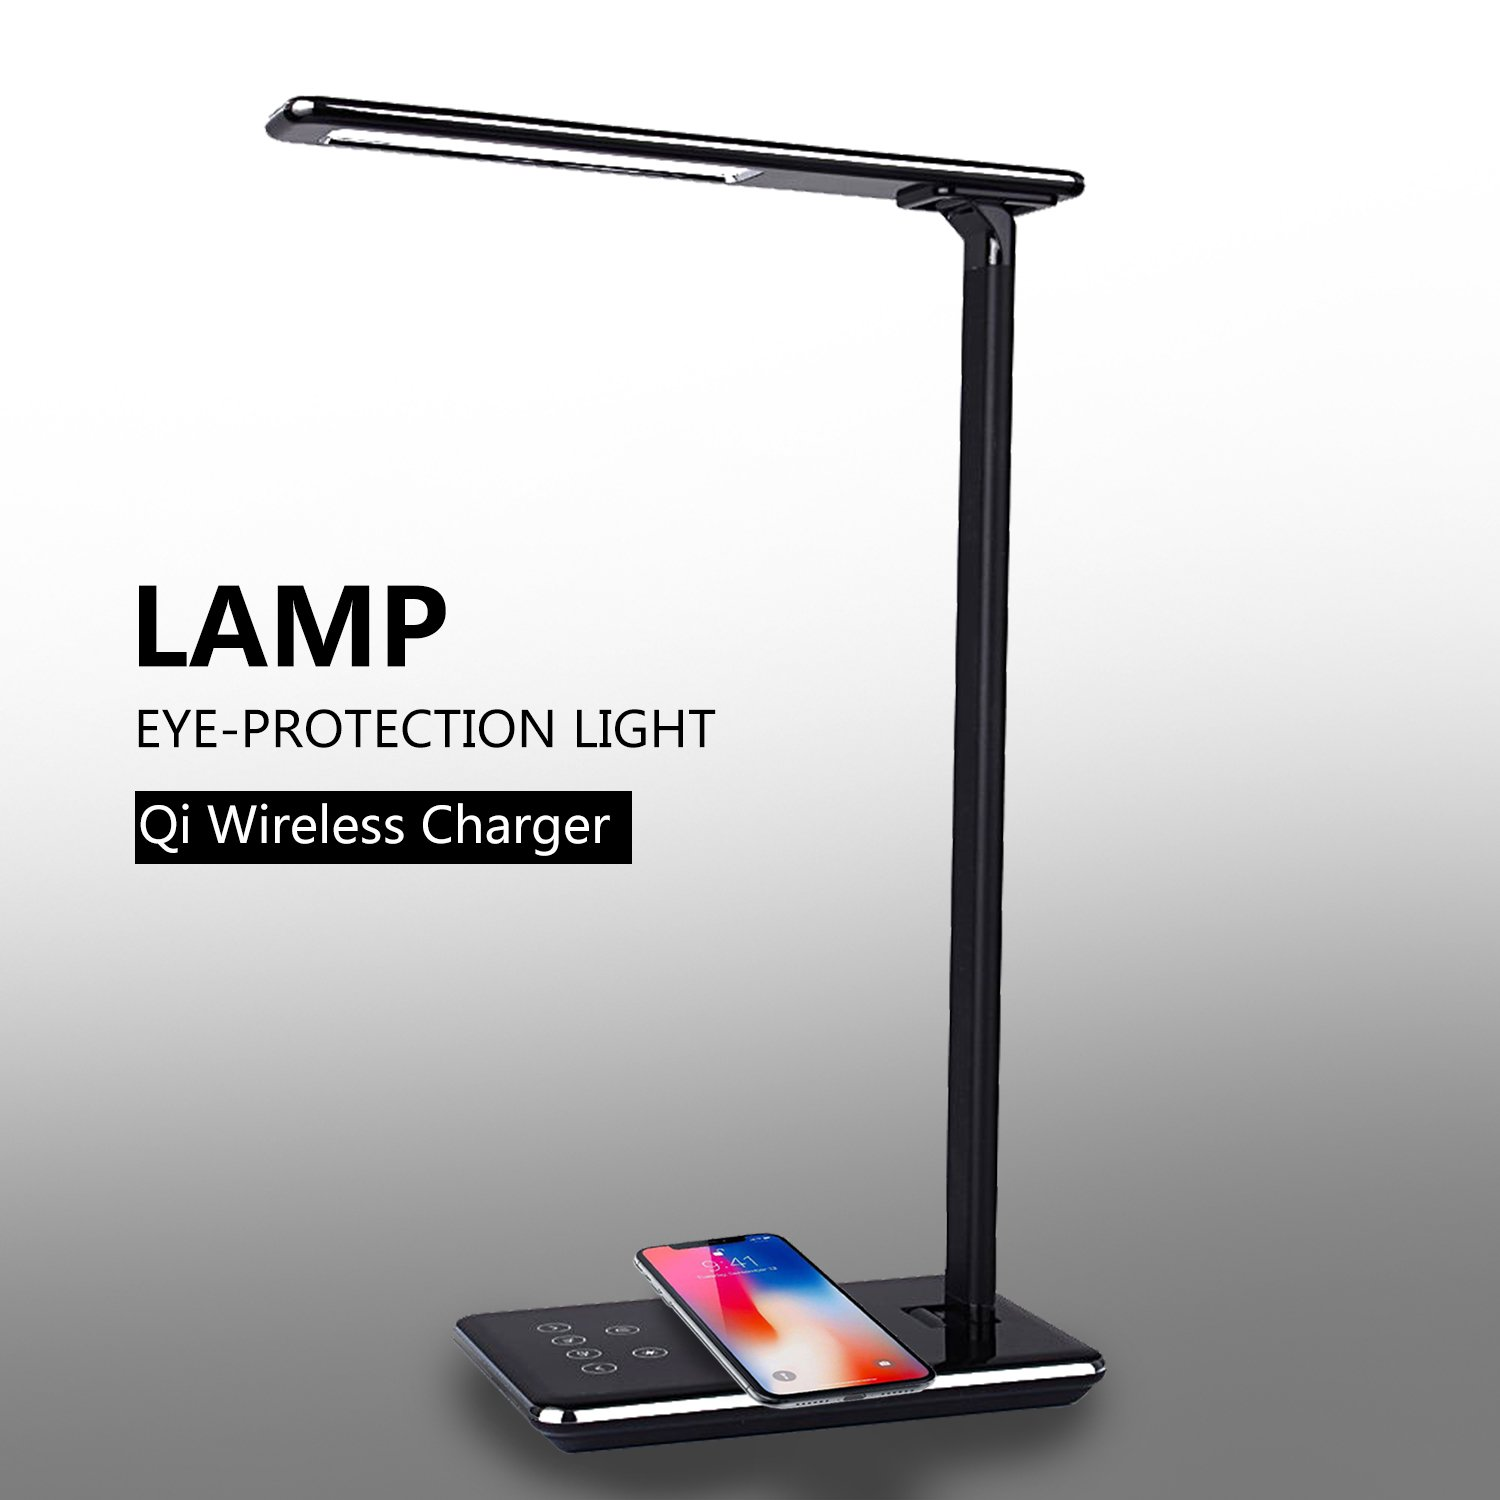 LED Desk Lamp, Table Lamps, Brightness Adjustable Office Lamp with USB Charging Port, Qi Wireless Charger, Touch Control, 4 Color Modes, Timer, Night Light (Black)